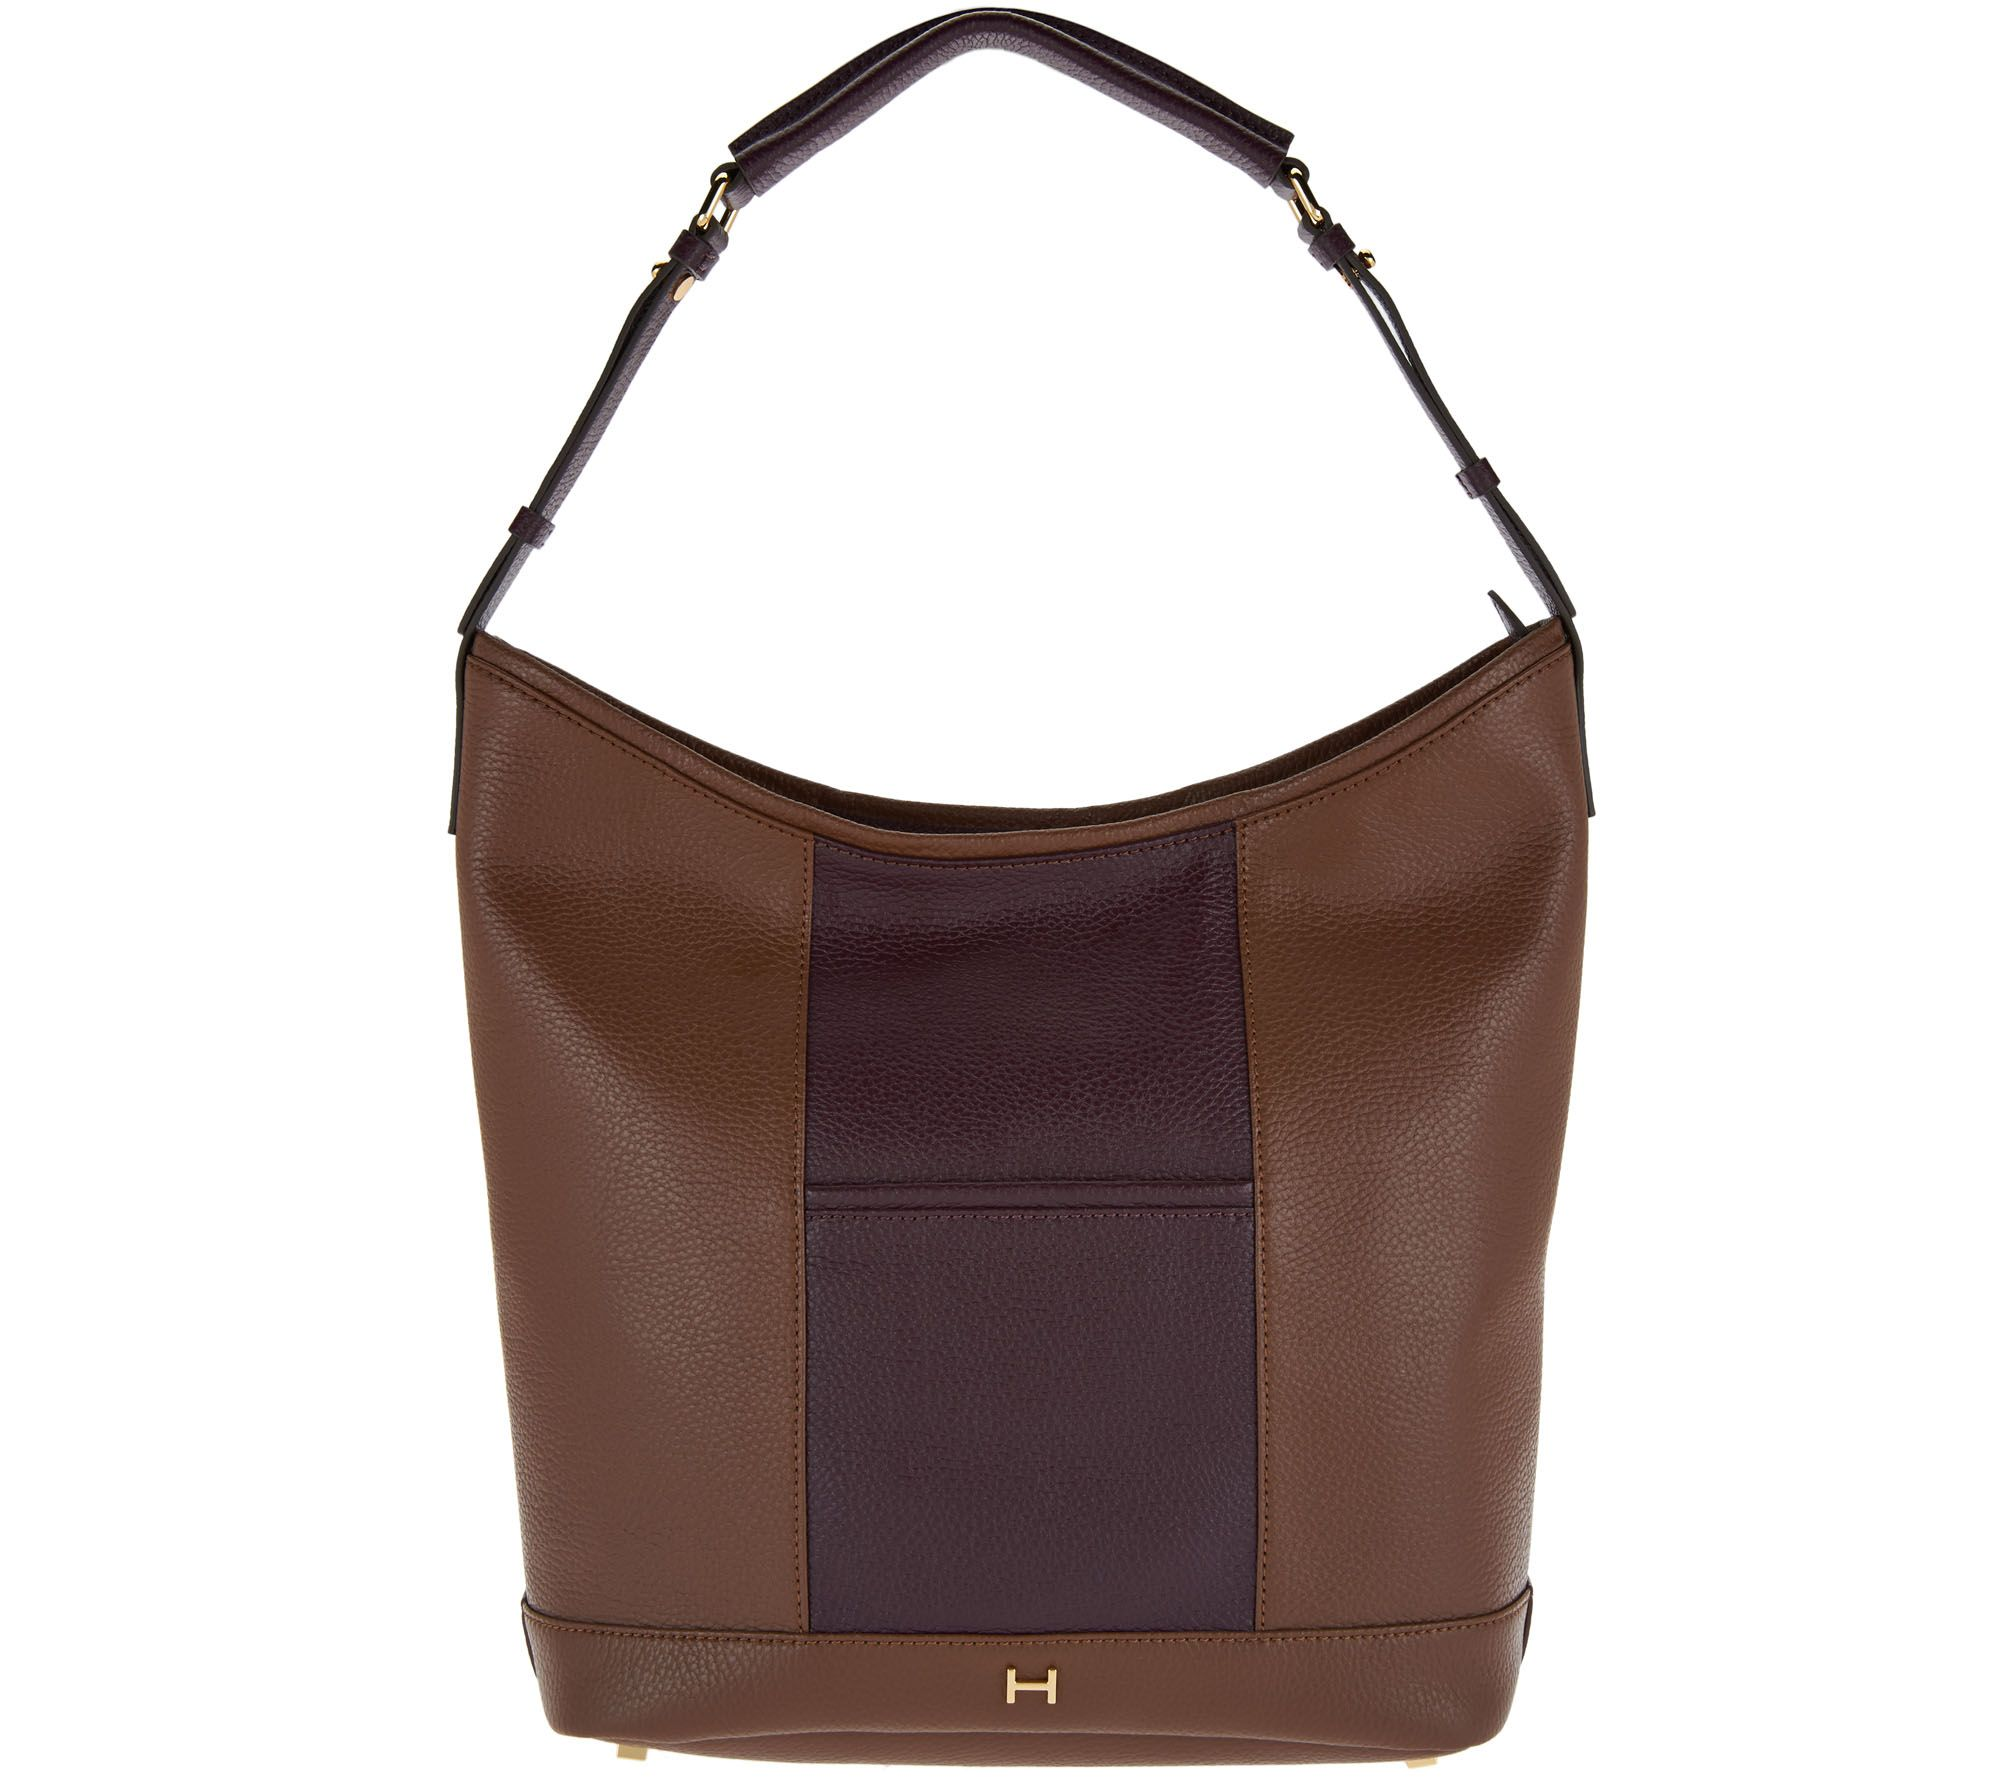 e52da35496 H by Halston Pebble Leather Color-Block Hobo Handbag - Page 1 — QVC.com